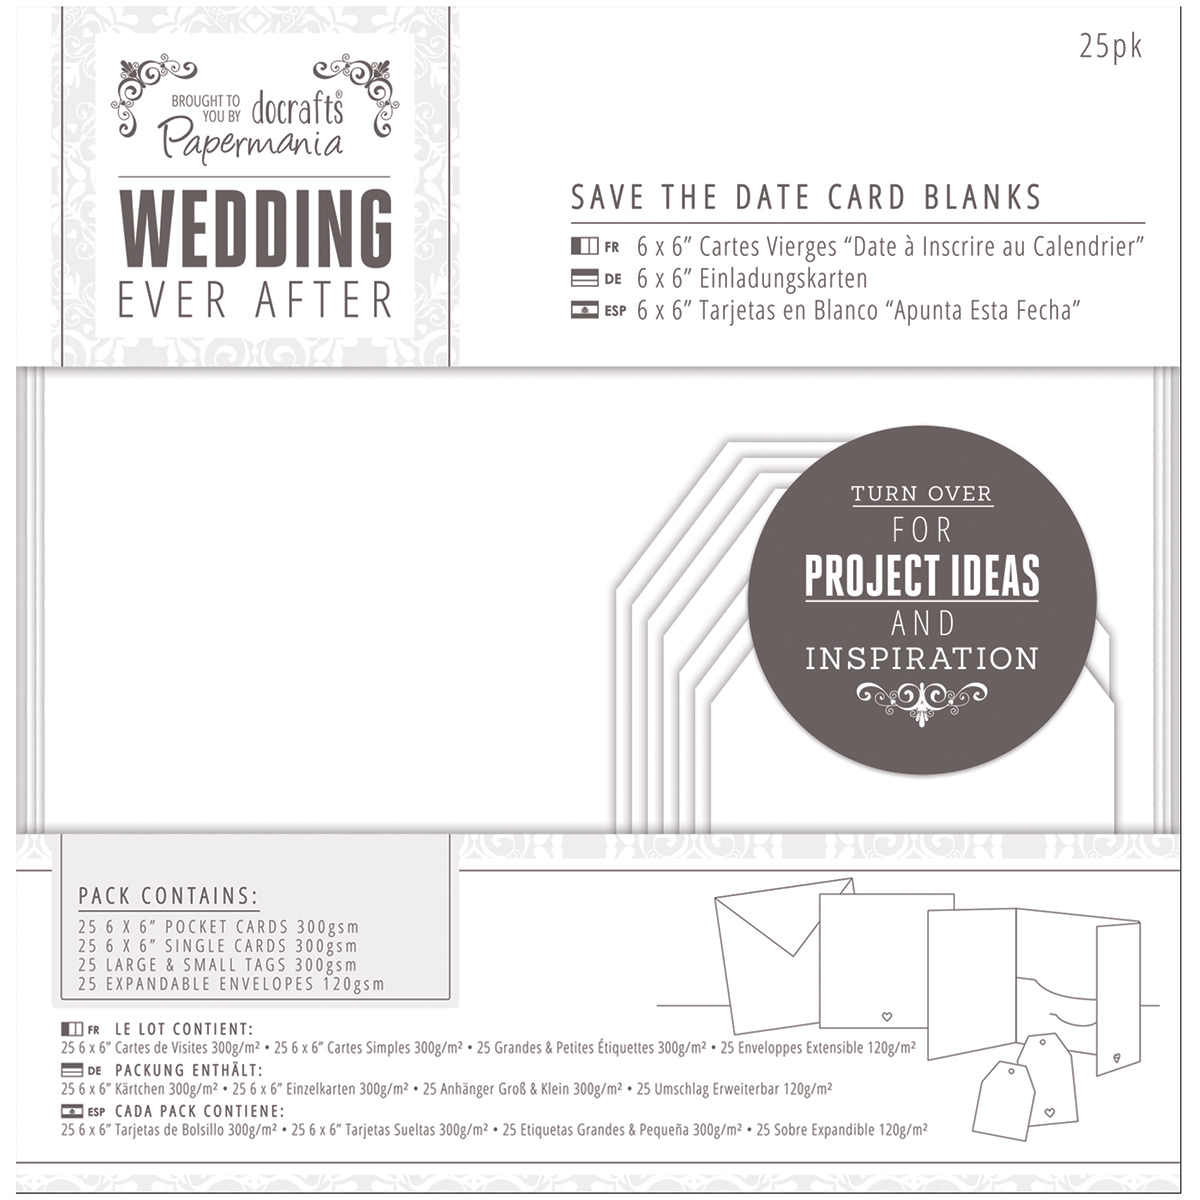 Papermania Ever After Wedding Blank Cards, 25pk, White Die-Cut Heart